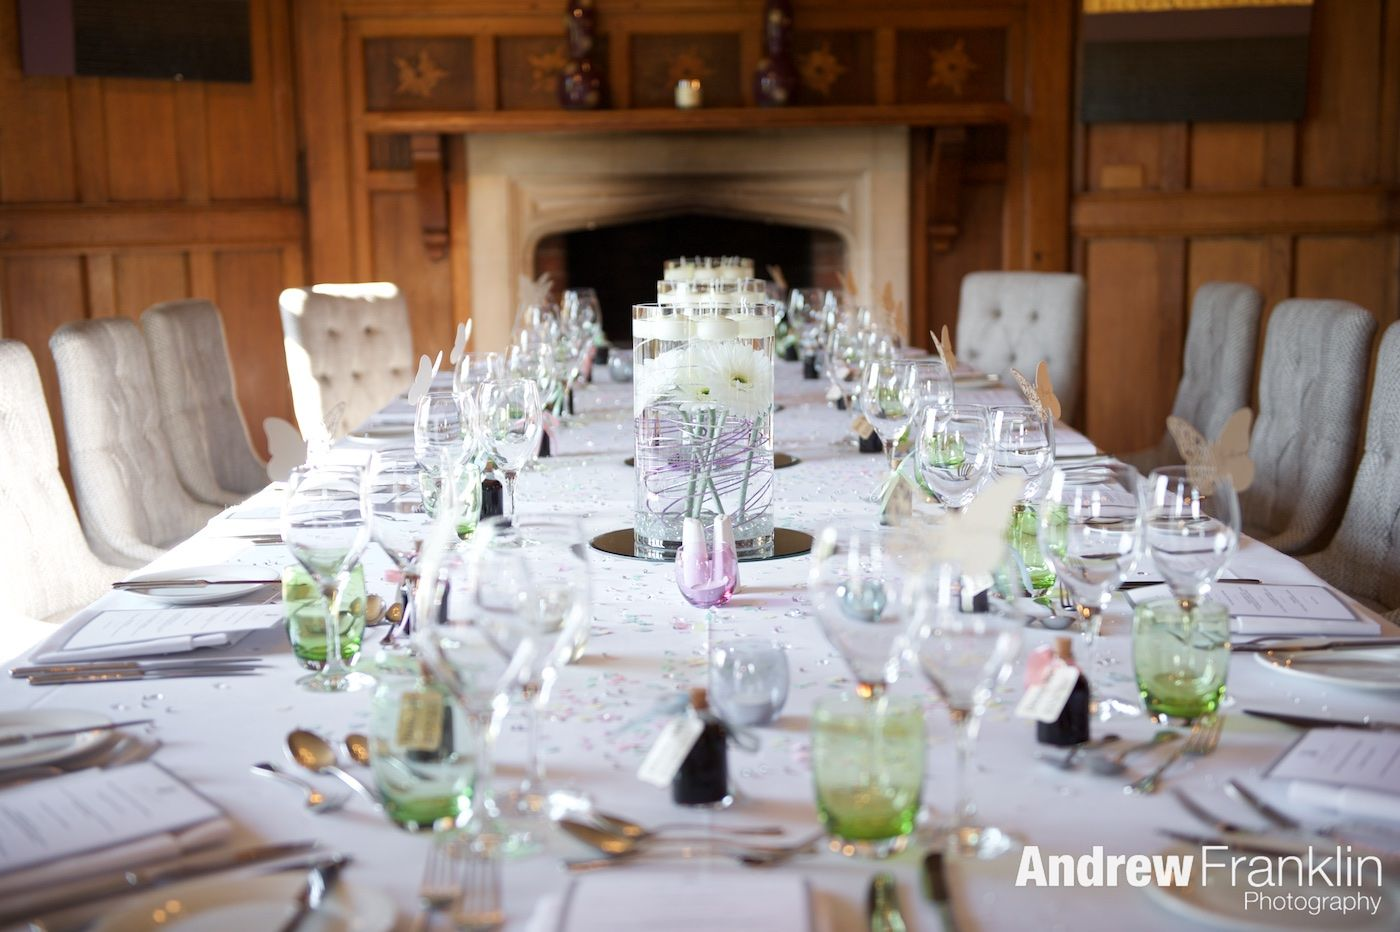 Wedding Breakfast, Wedding Photography, little details, Top Table, Decoration, Andrew_ Franklin